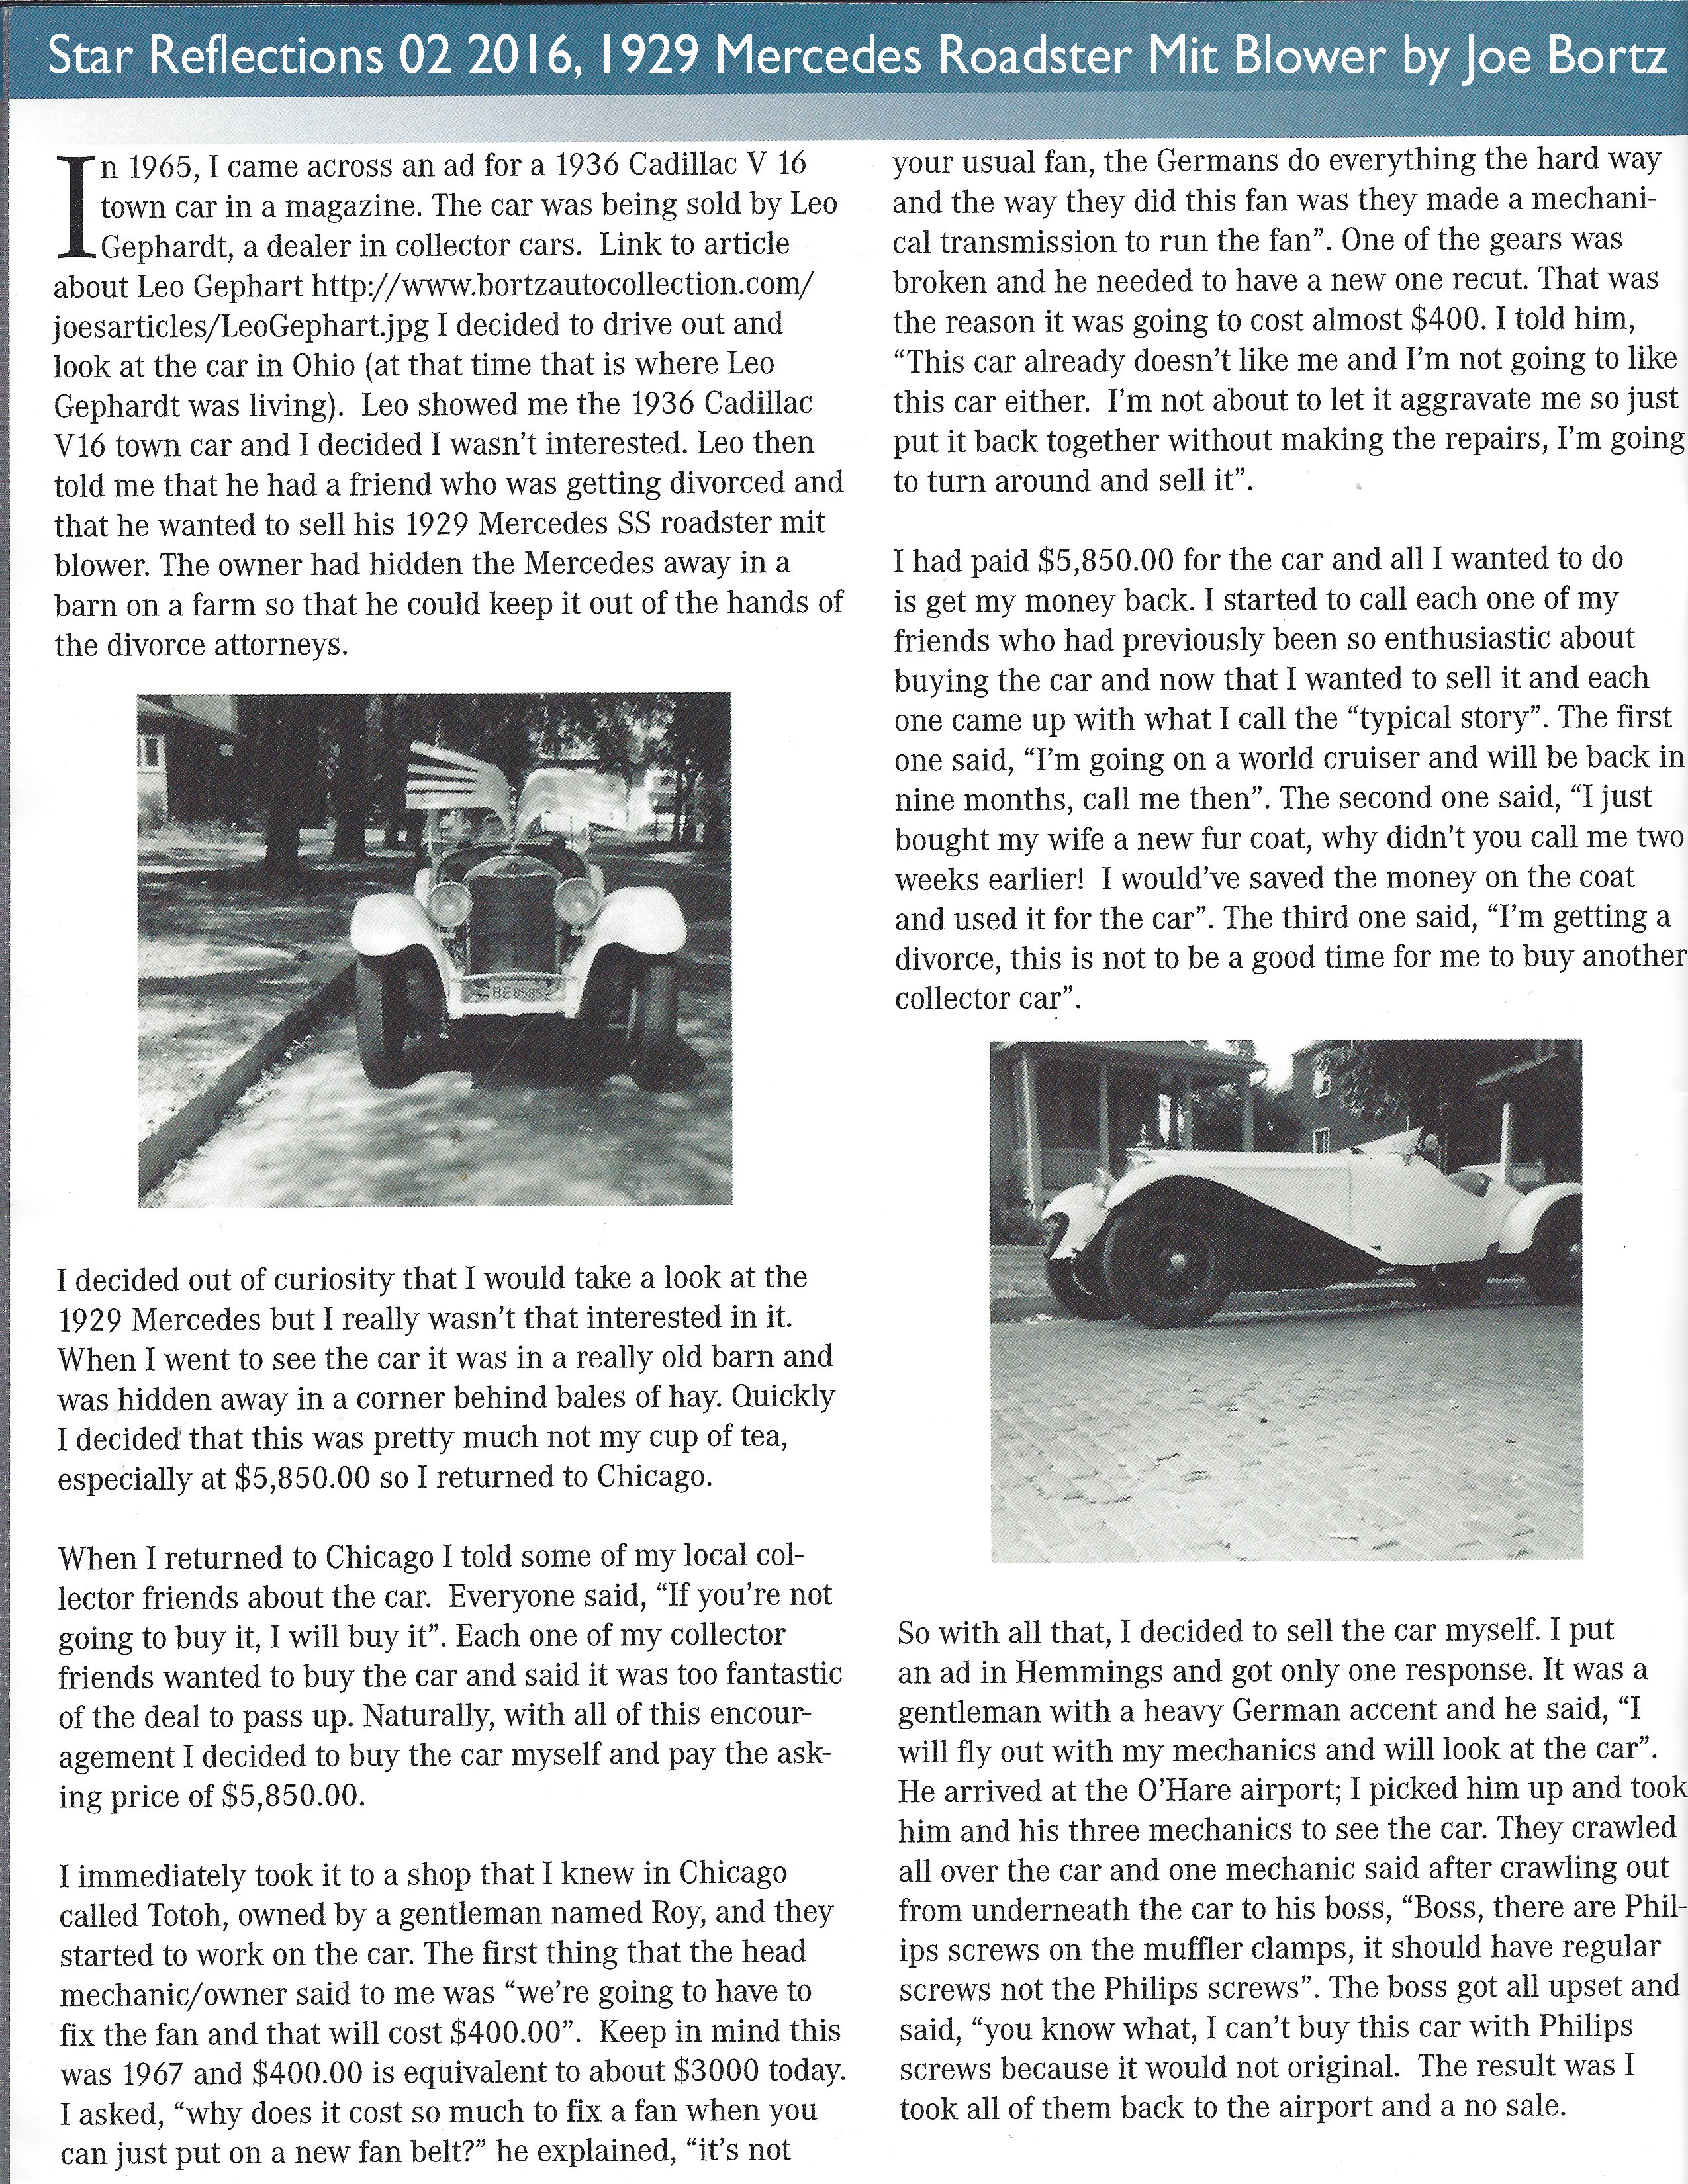 1929 Mercedes Roadster Mit Blower by Joe Bortz, Star Reflections 02 2016 p1